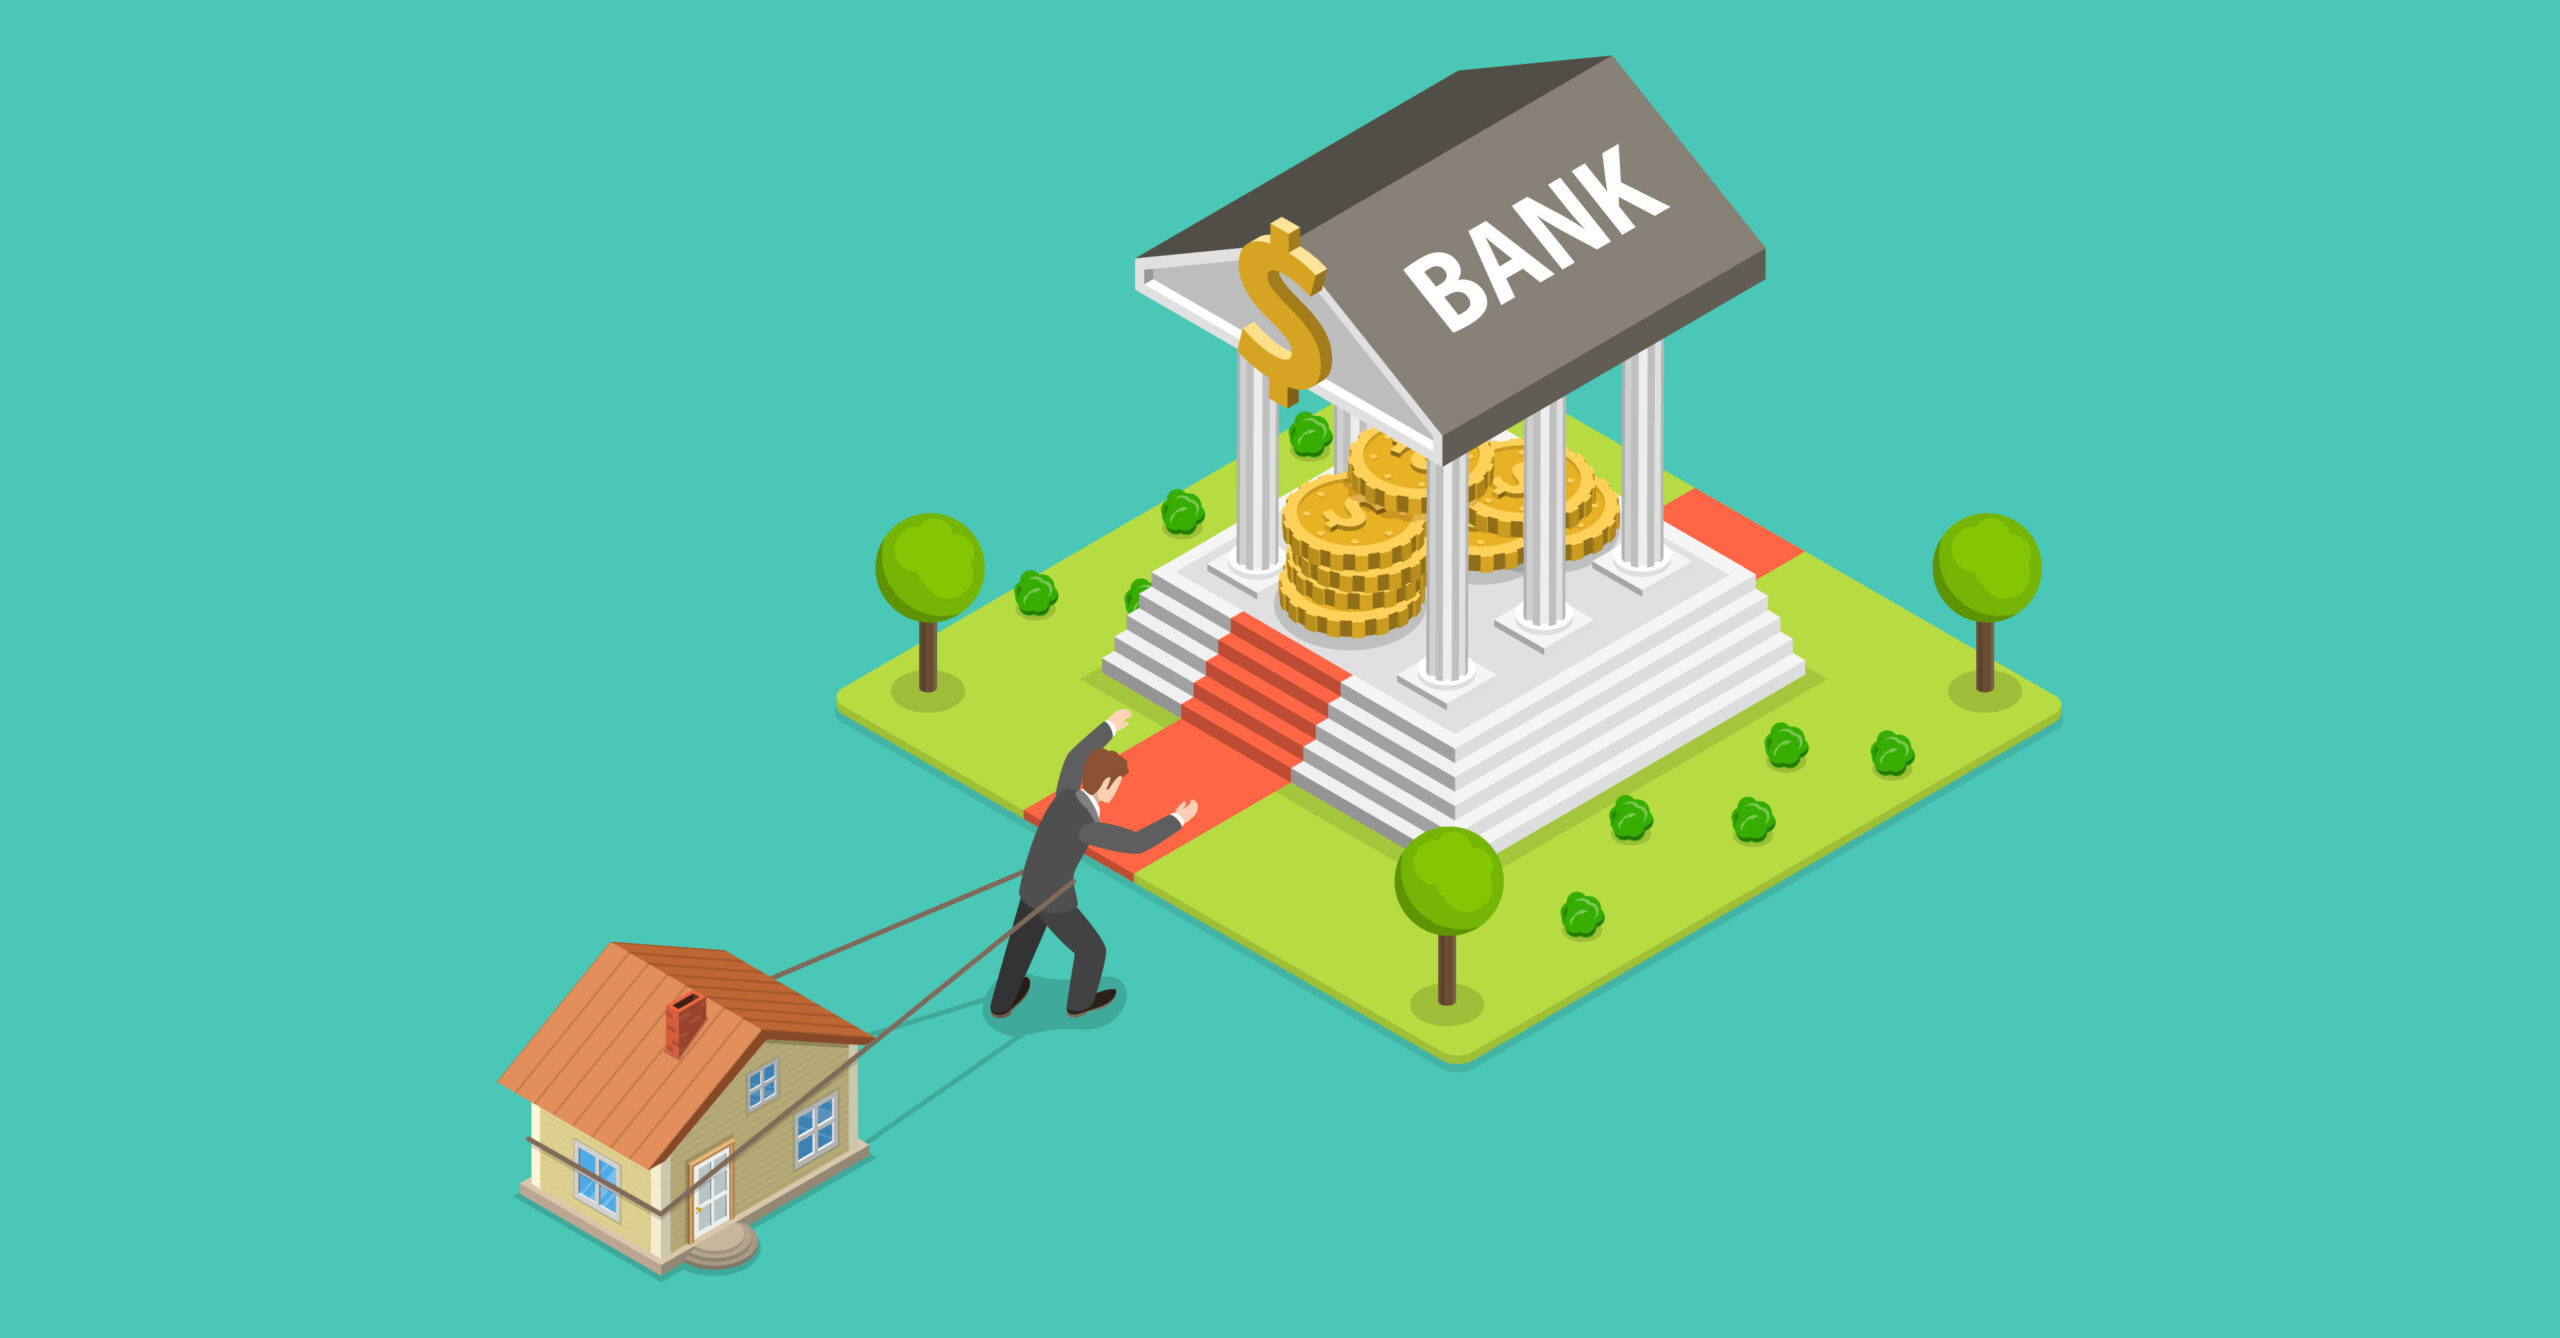 Why Is Collateral Is So Important To Bank Loan Officers?